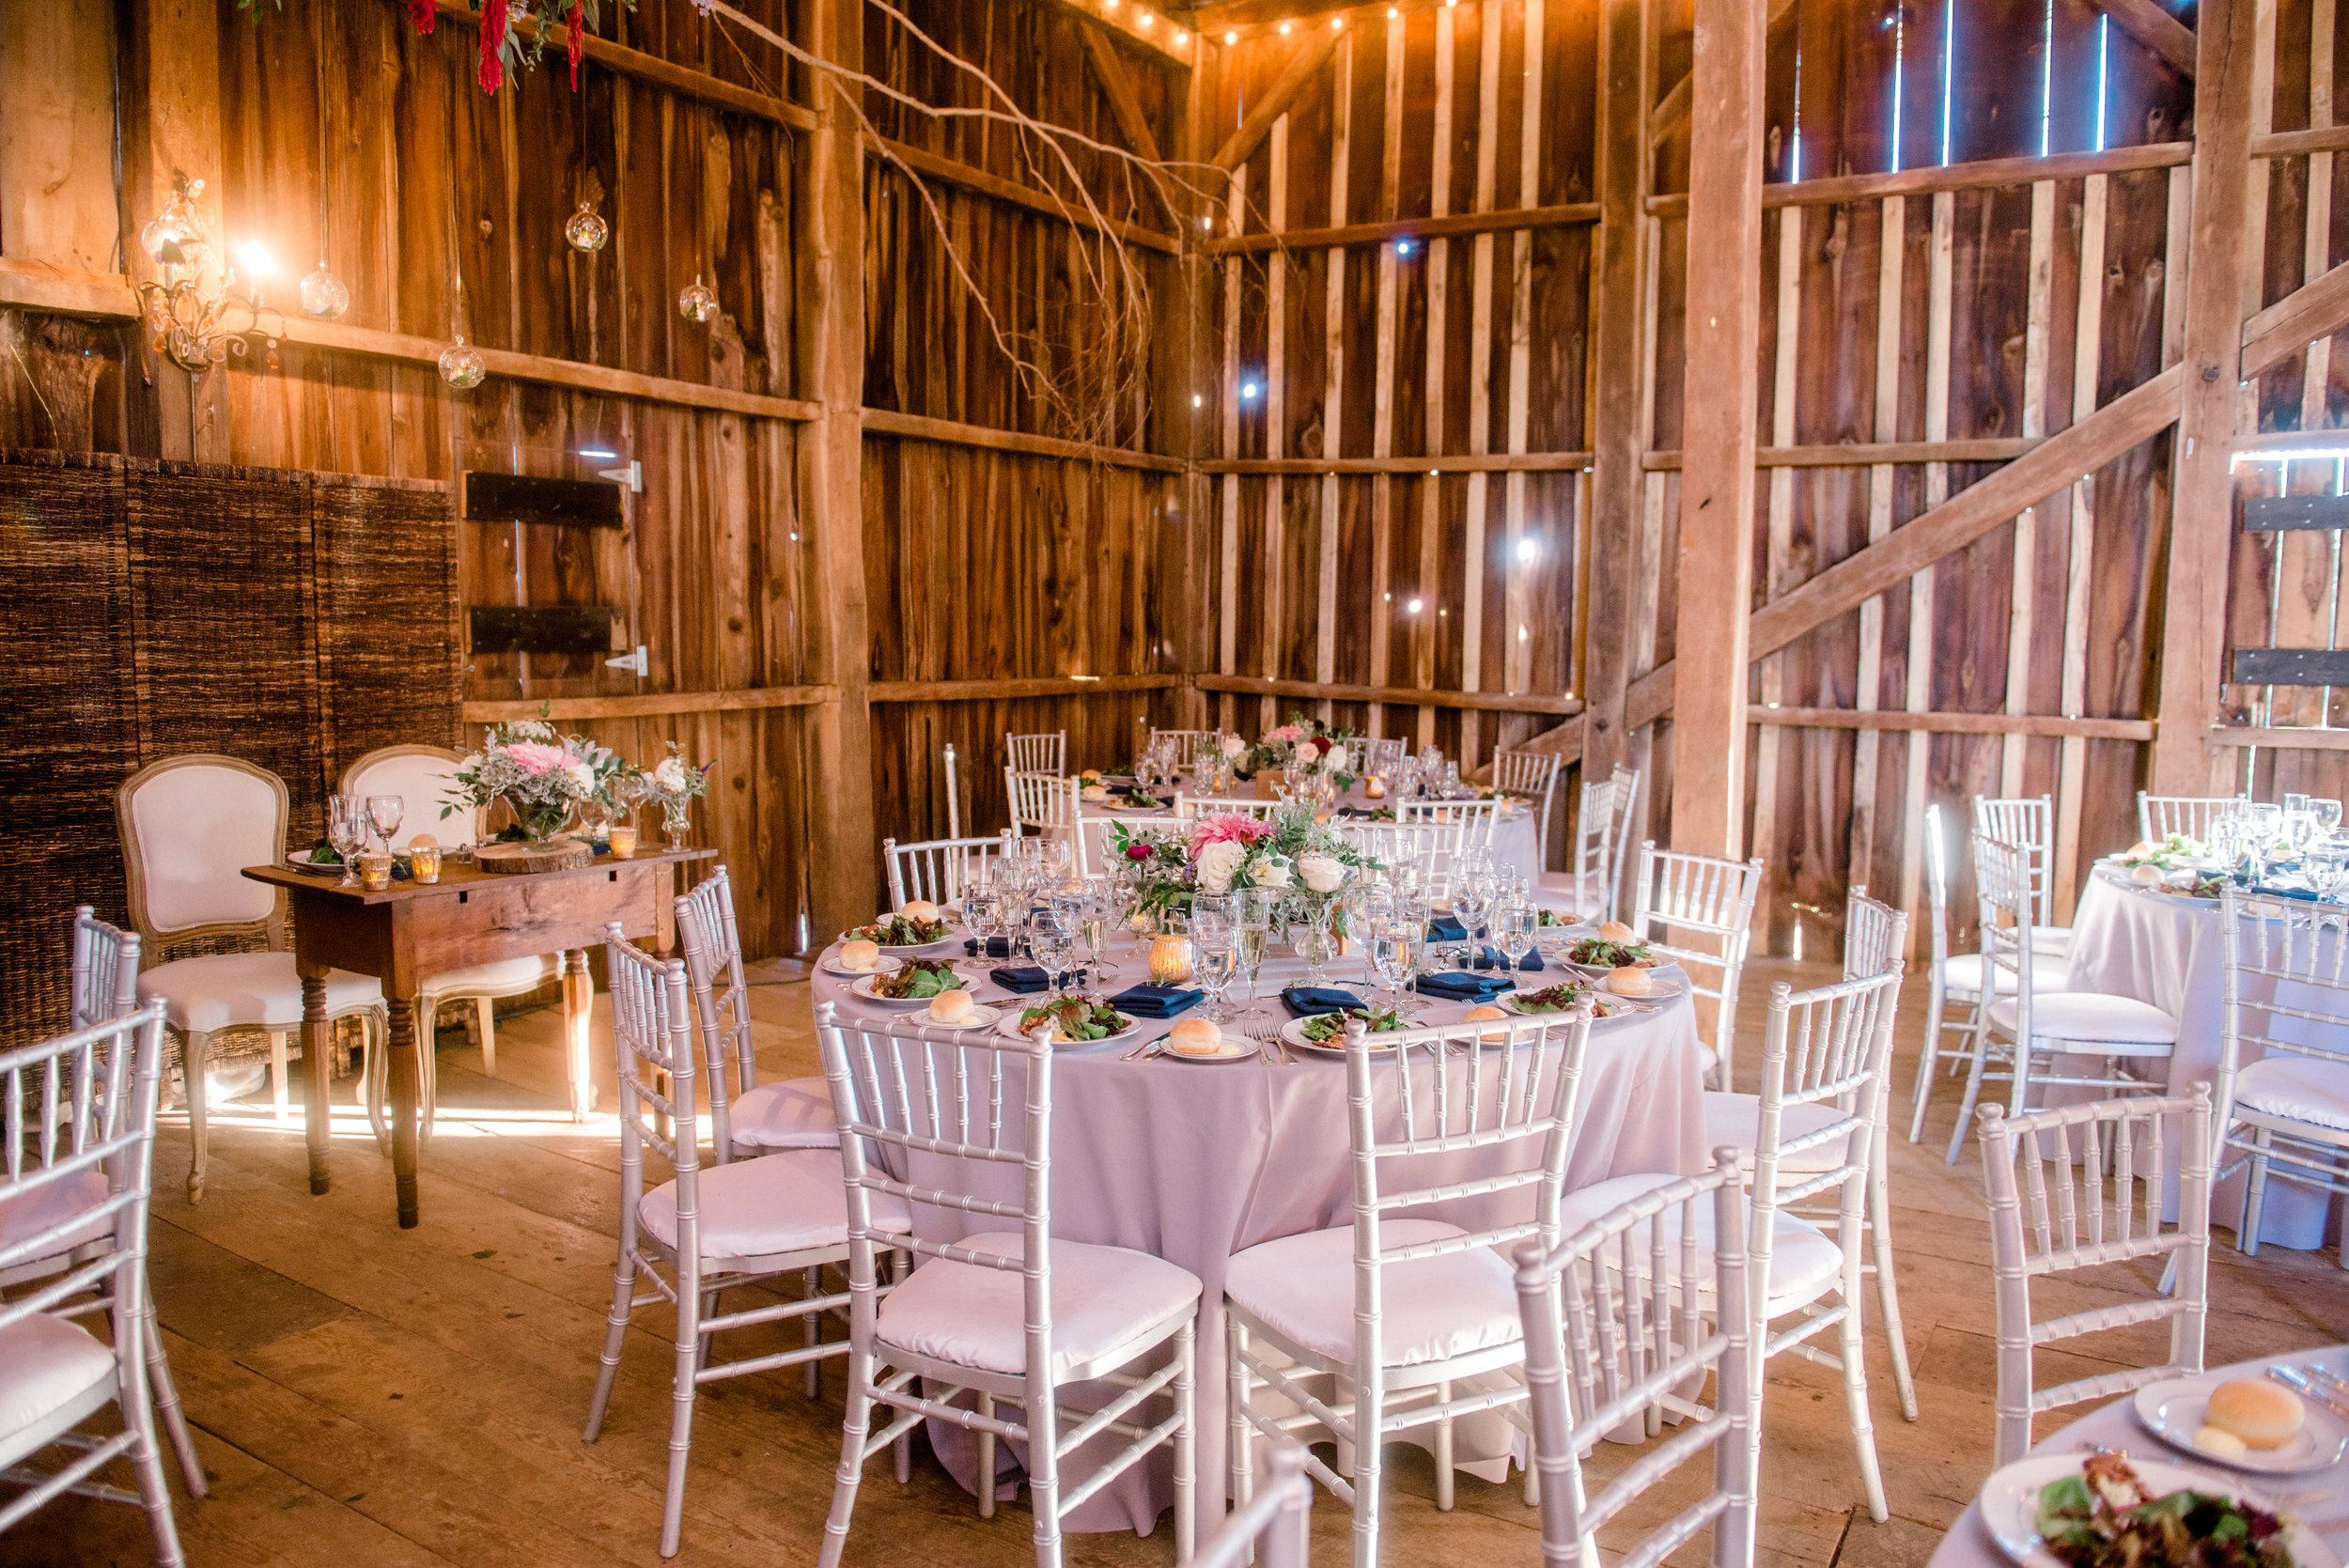 Barn-wedding-venue.jpg